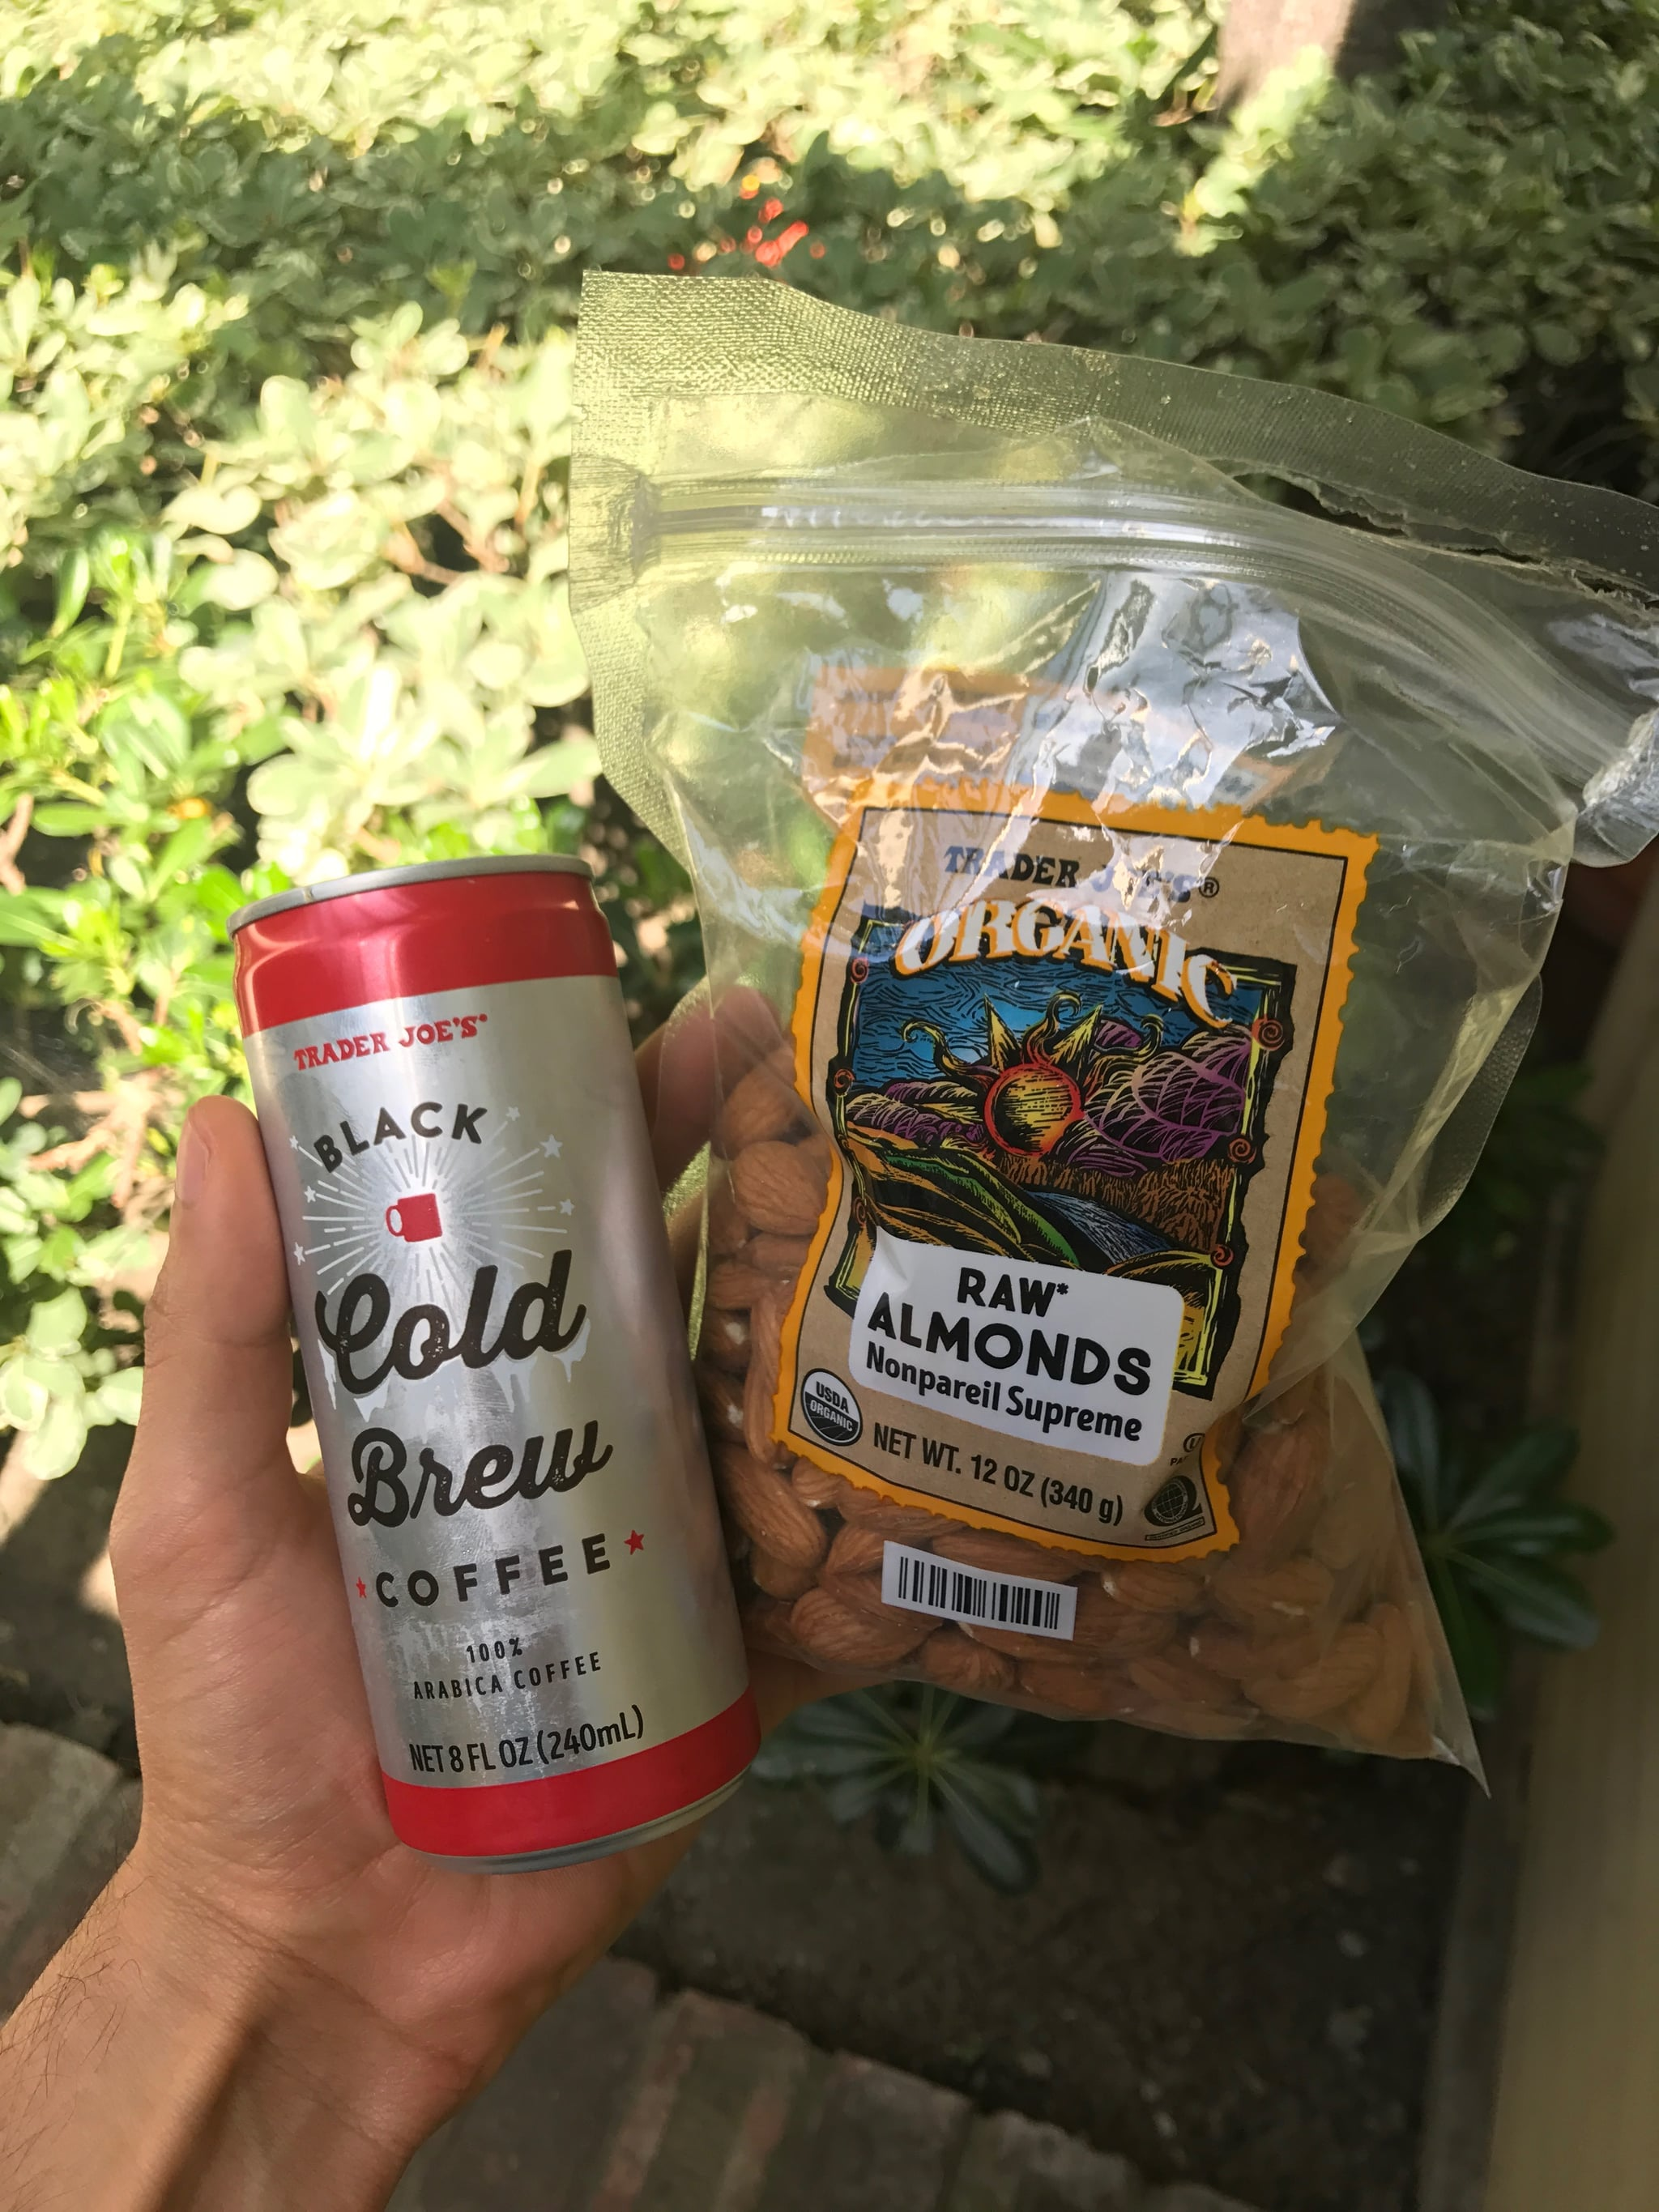 Trader Joe's Black Cold Brew and Raw Almonds